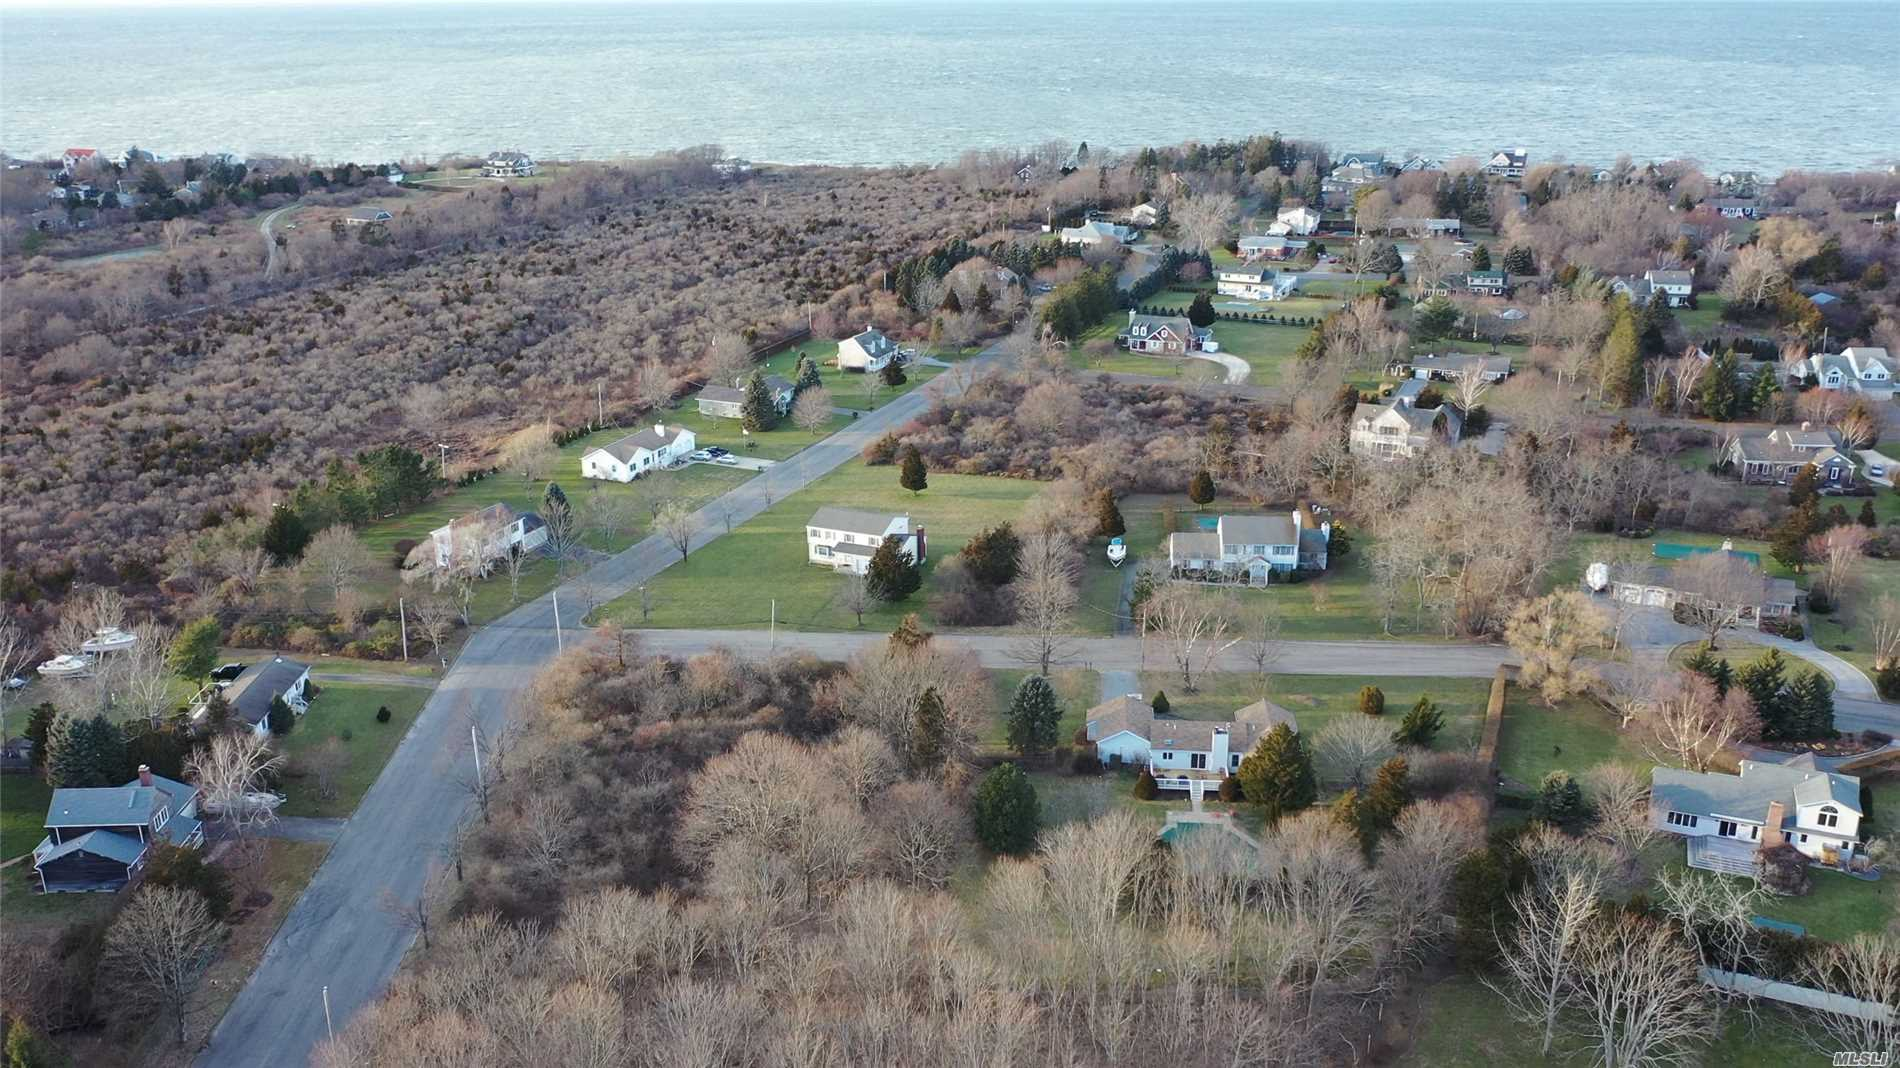 Highly Desirable, Builder's Acre, Corner Parcel In Sought After Orient-By-The-Sea Community. One Of Only A Few Prime Parcels Left! Short Distance To Orient Point State Park, Marina, Ferry And More! Private Association Beach And Recreation Area Where You May Enjoy The Beauty And Tranquility Of Long Island Sound. An Ideal Location To Build Your Dream North Fork Home! Won't Last!